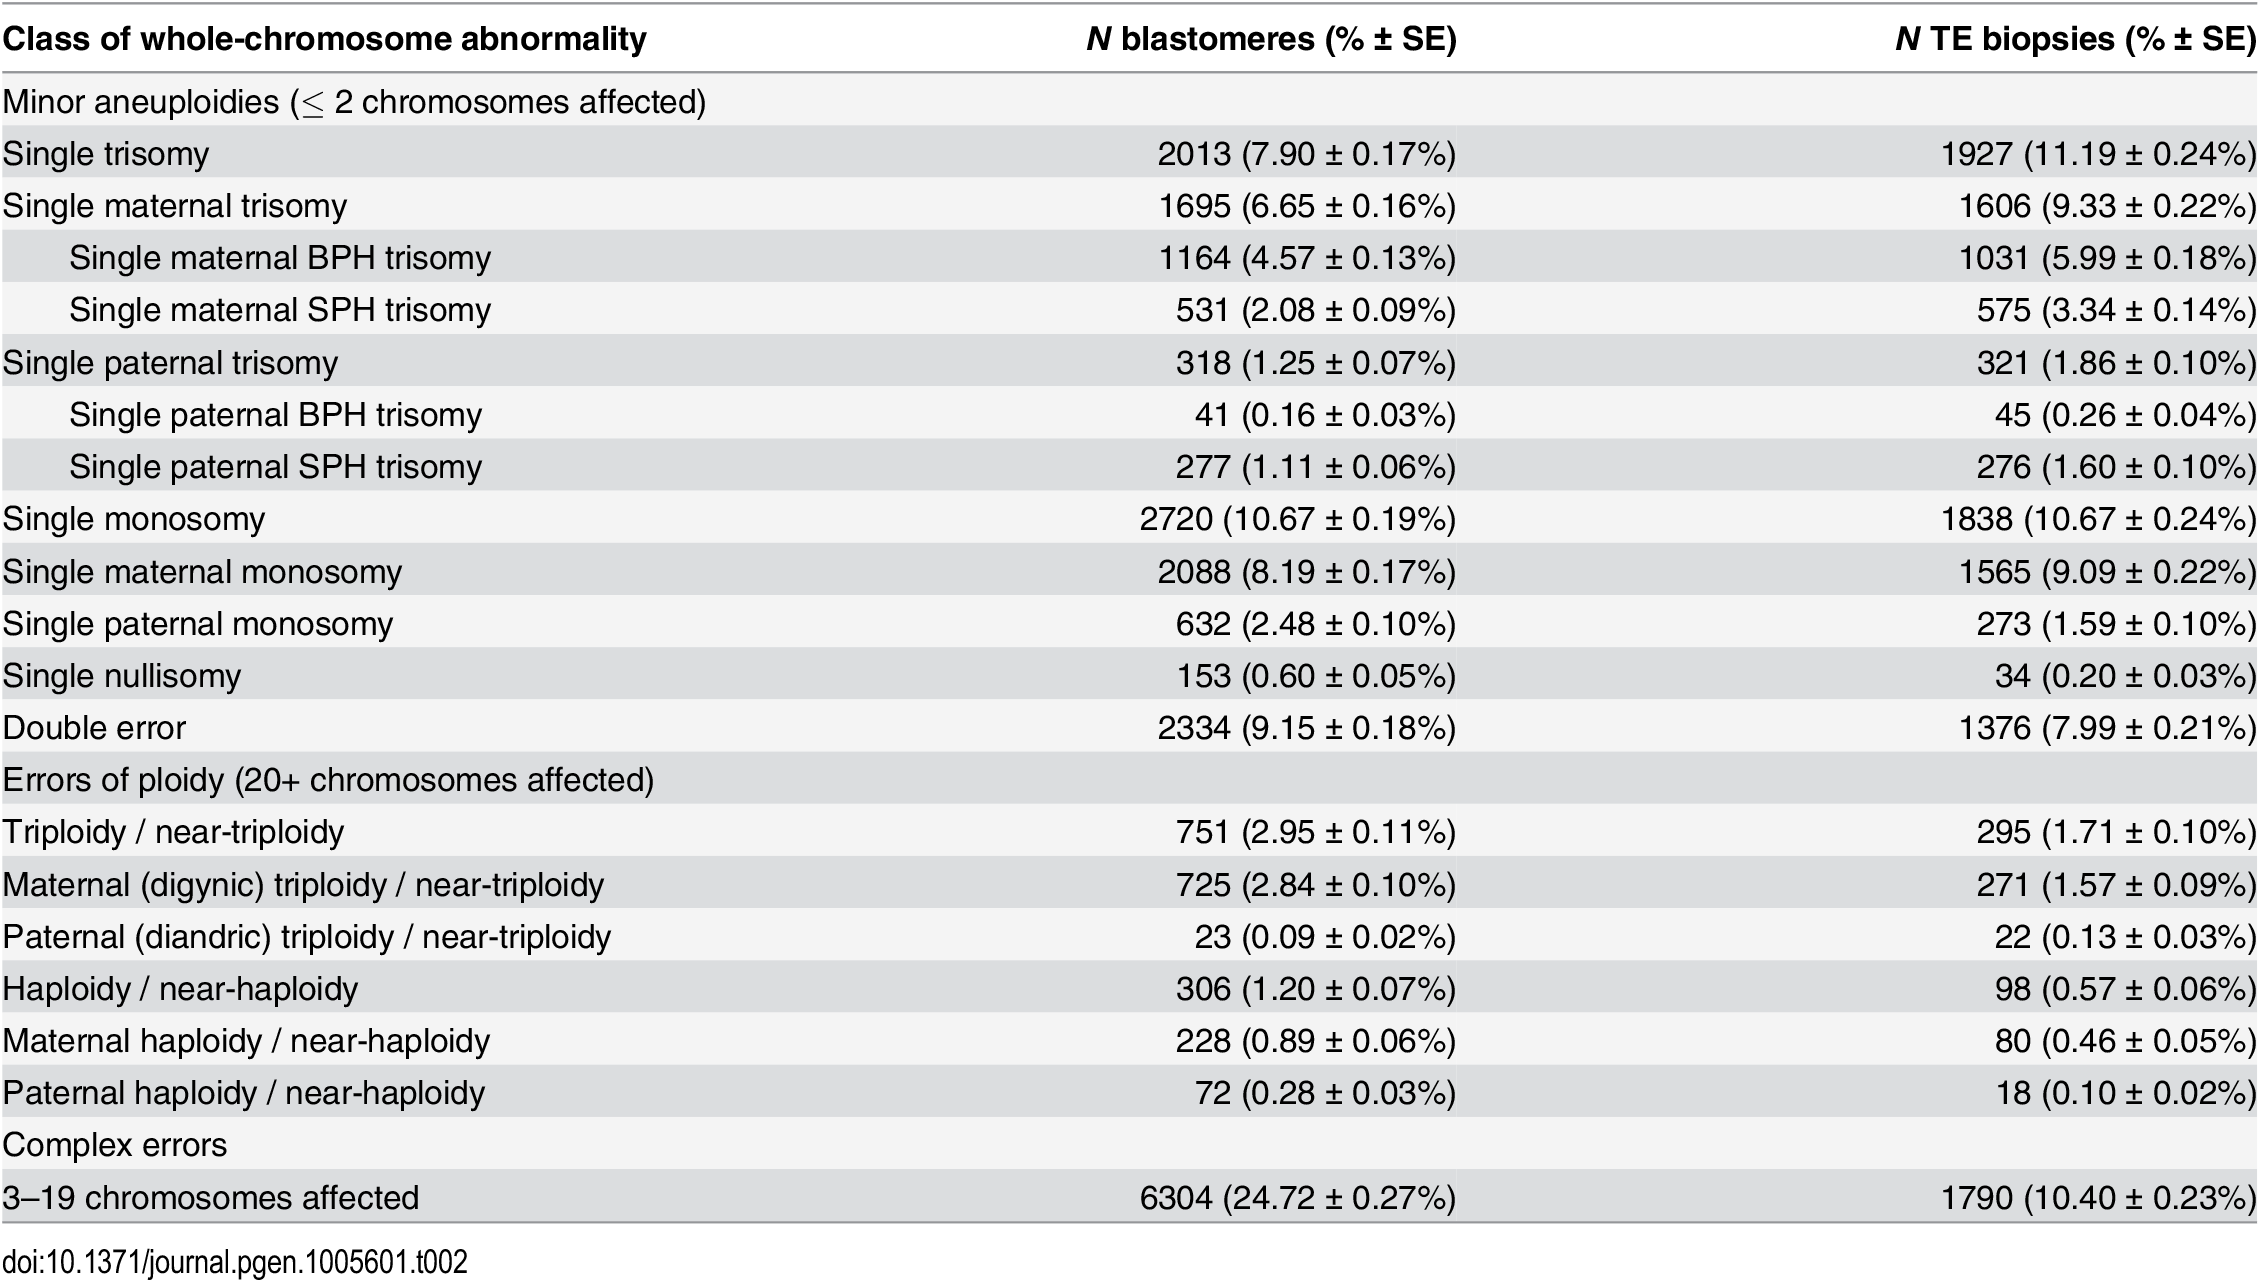 Rates of various forms of whole-chromosome abnormalities observed in day-3 blastomere biopsies and day-5 TE biopsies.